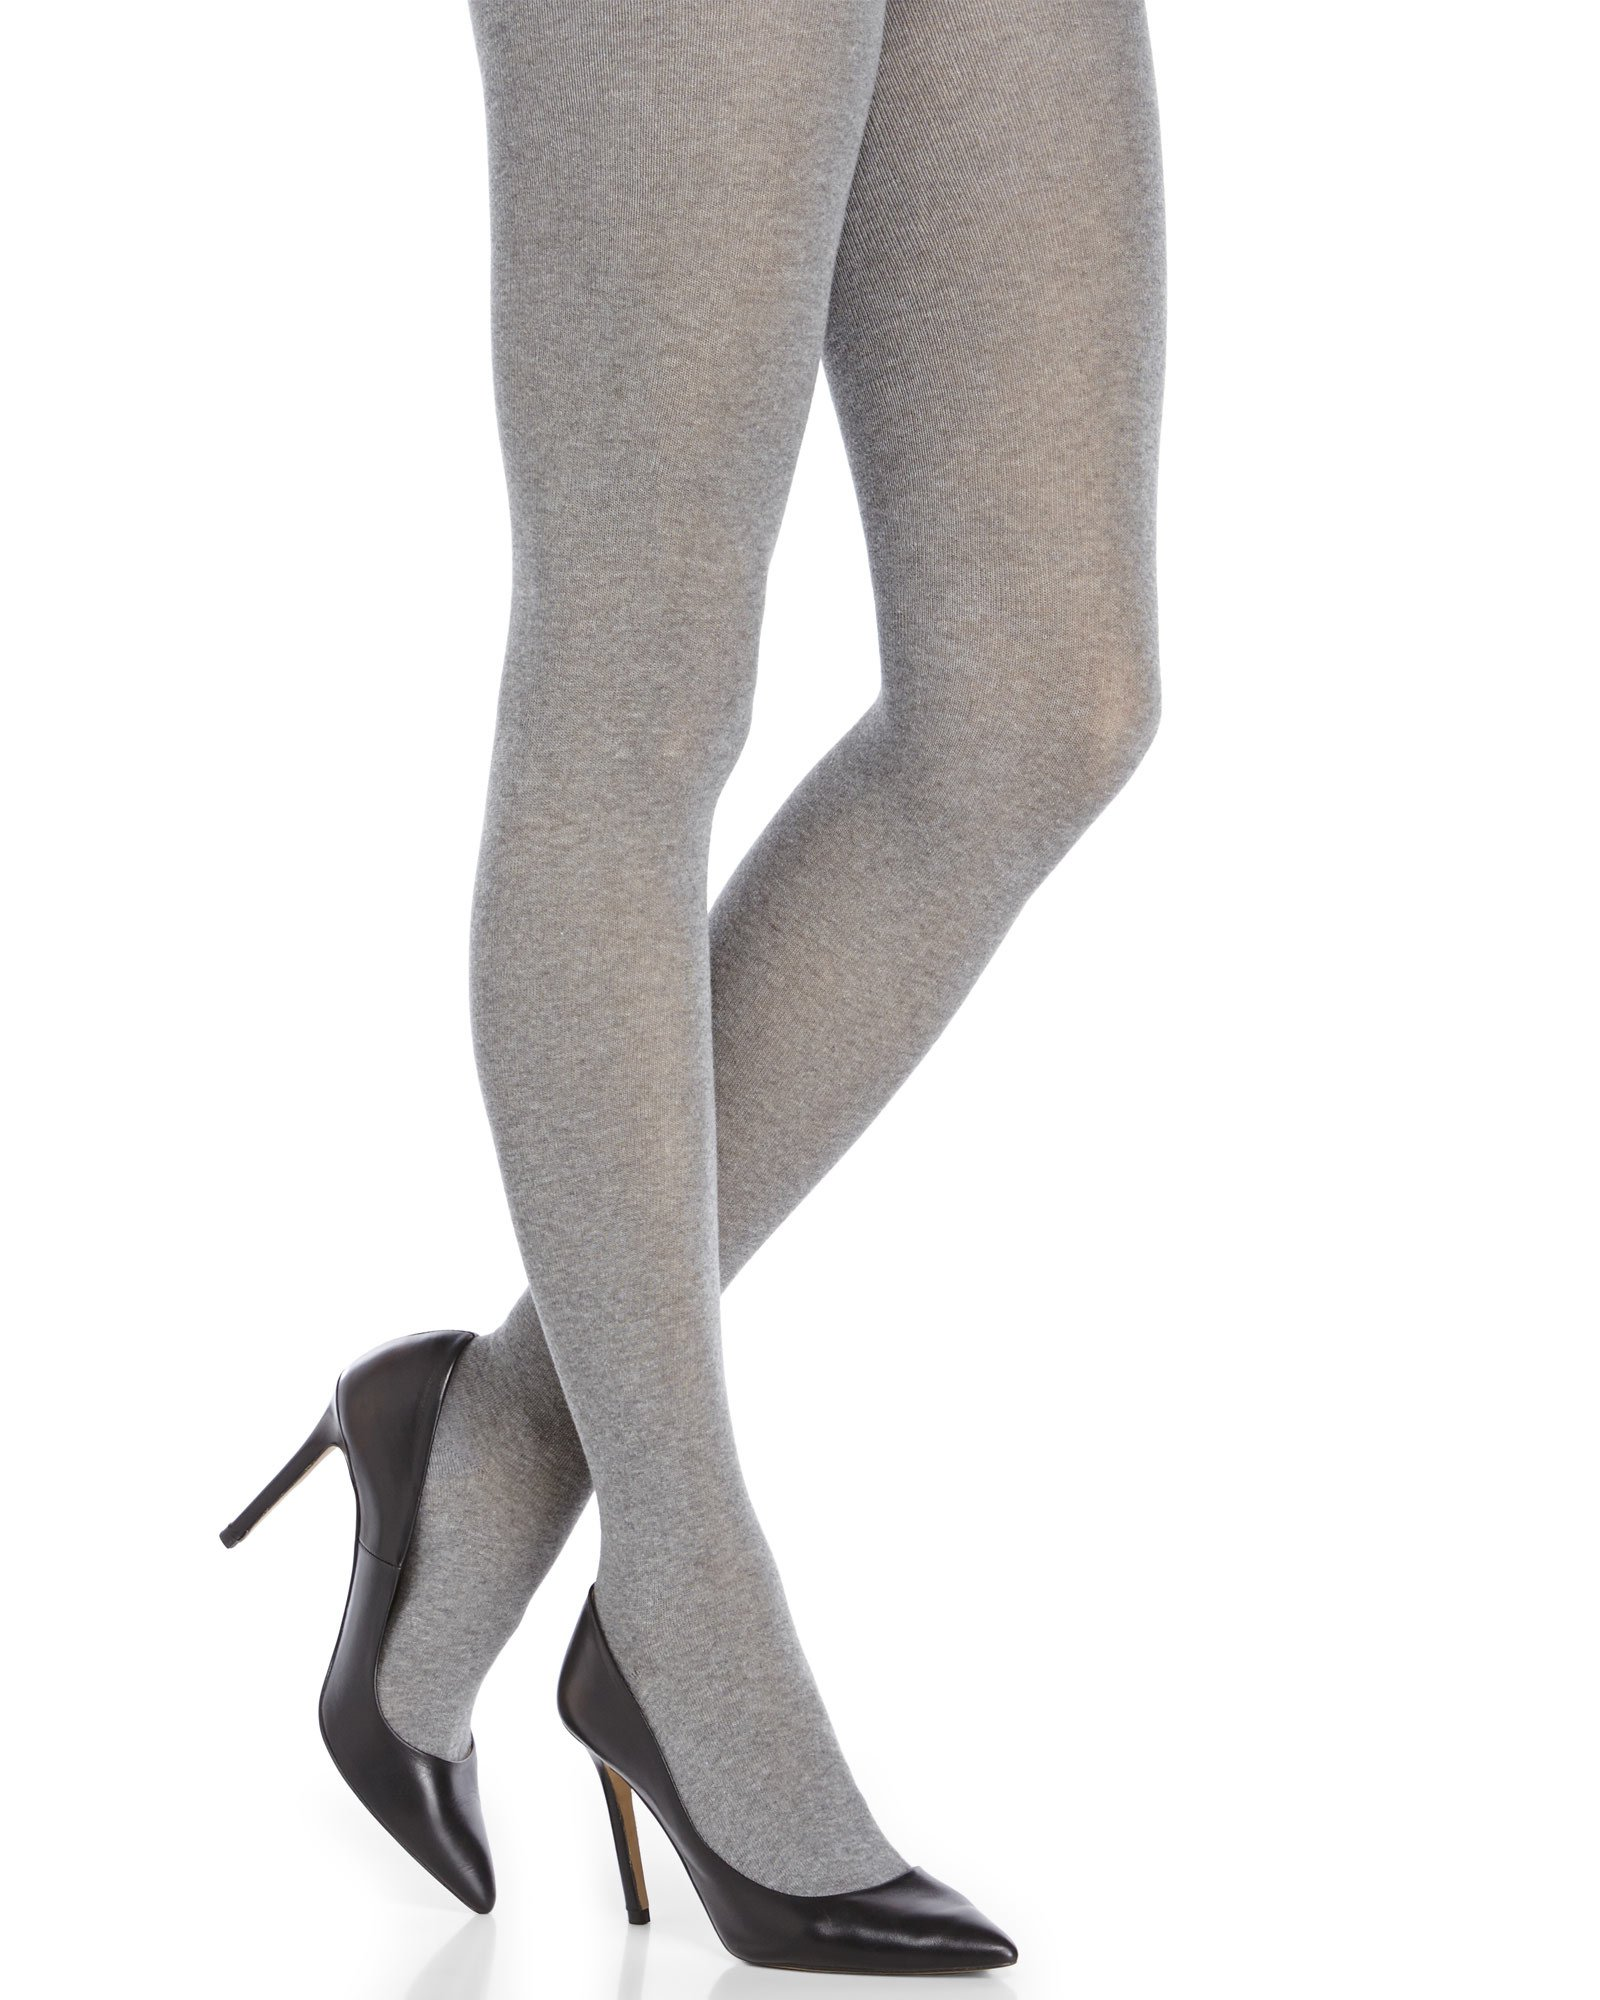 e12bd09e23108 Hue Flat Knit Sweater Tights in Gray - Lyst